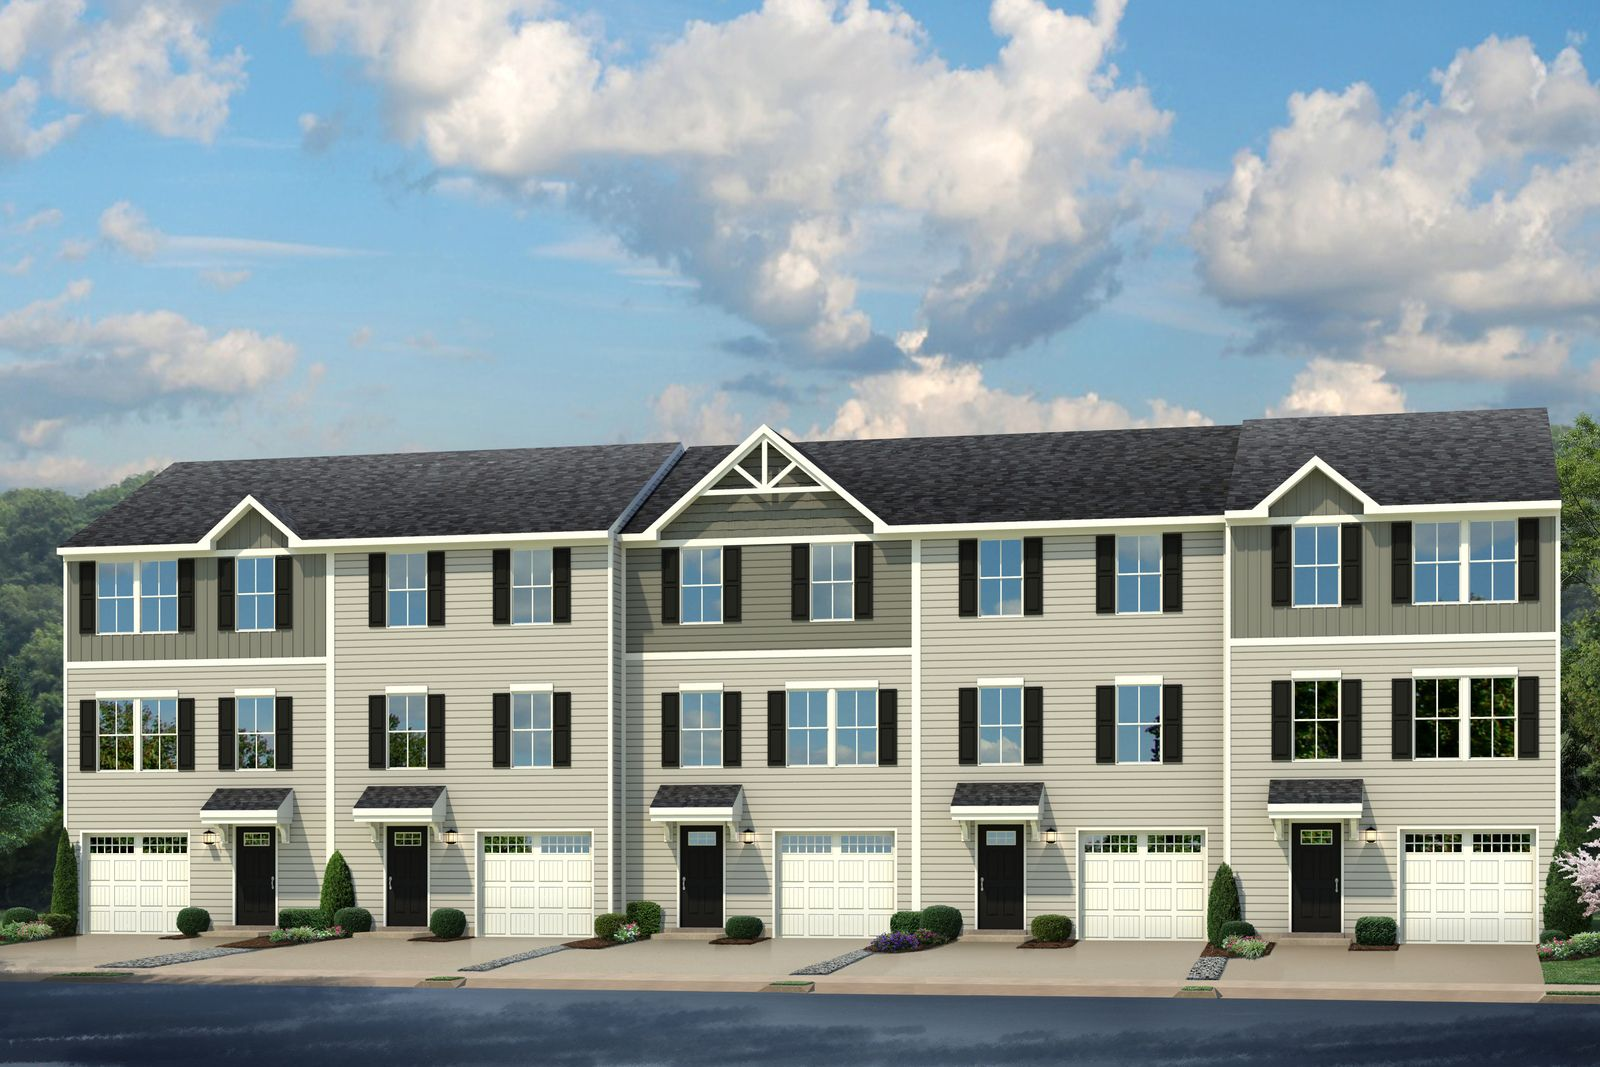 Welcome to Stonecrest Townhomes:Instead of throwing away thousands in rent, start investing in your future with a new townhome of your own! From theUpper $100s. Click here toschedule your virtual appointment now!